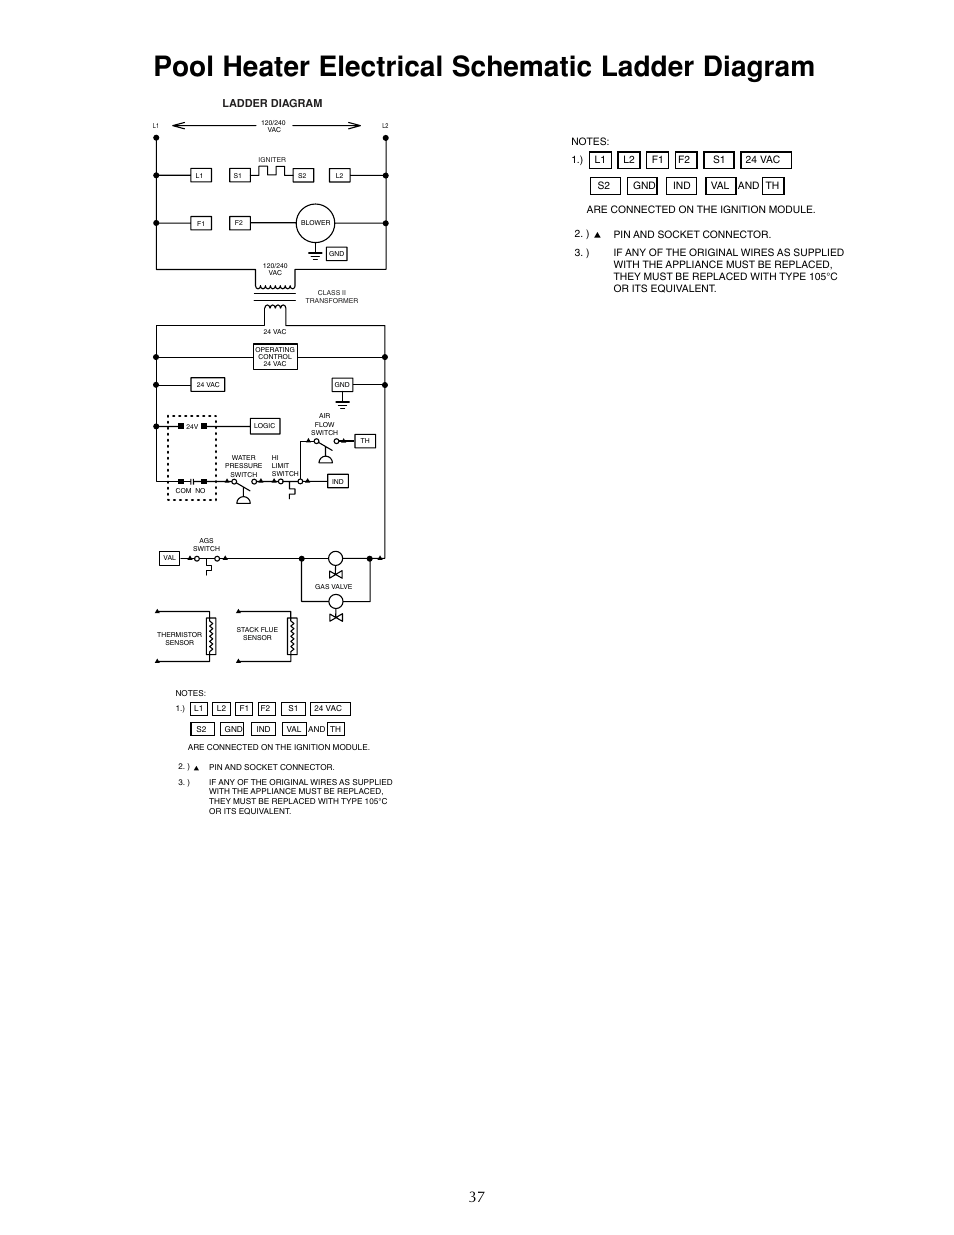 hight resolution of pool heater electrical schematic ladder diagram sta rite sr333lp user manual page 37 38